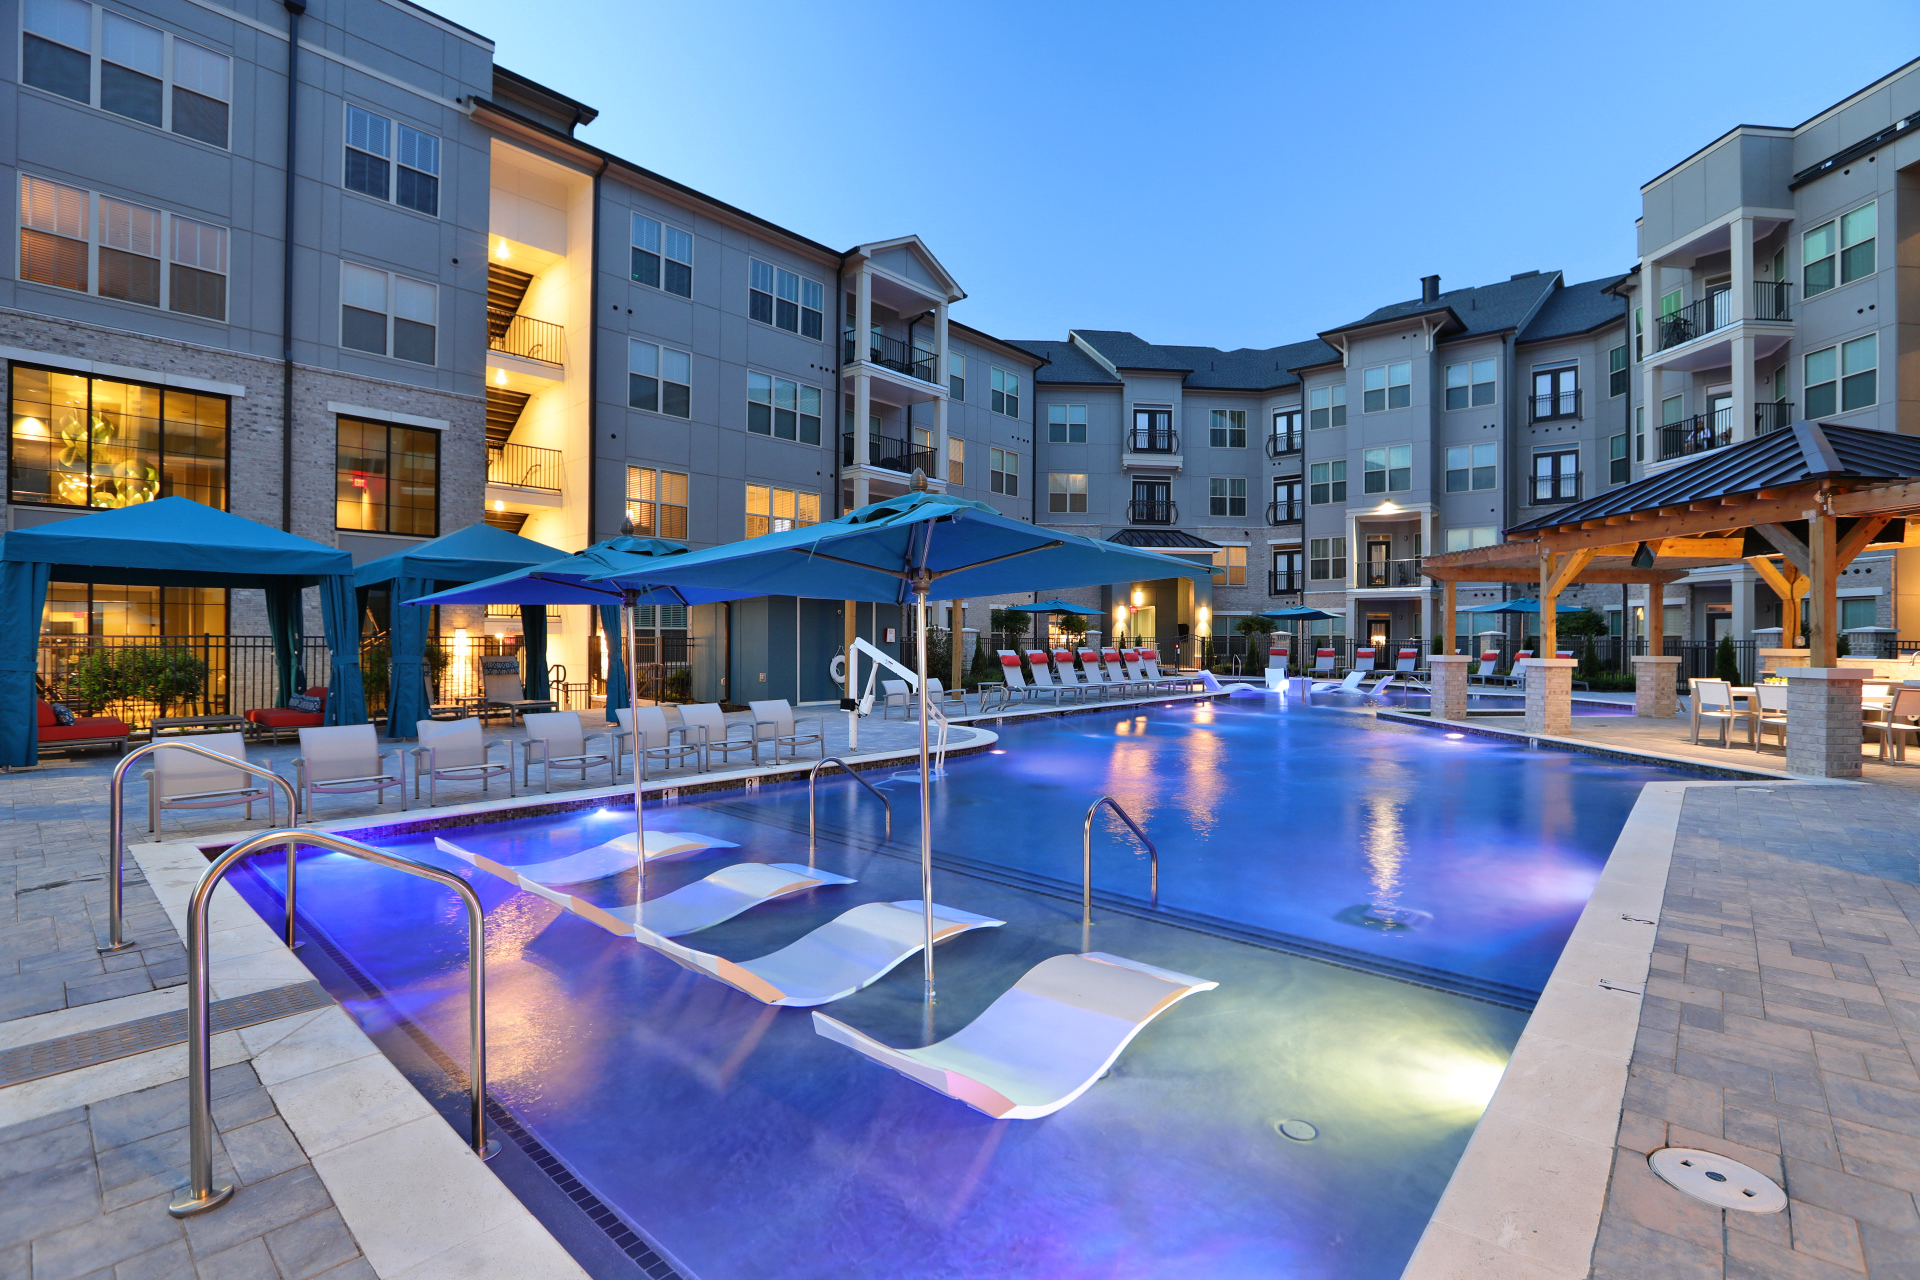 Pool at Avia Apartments in Short Pump